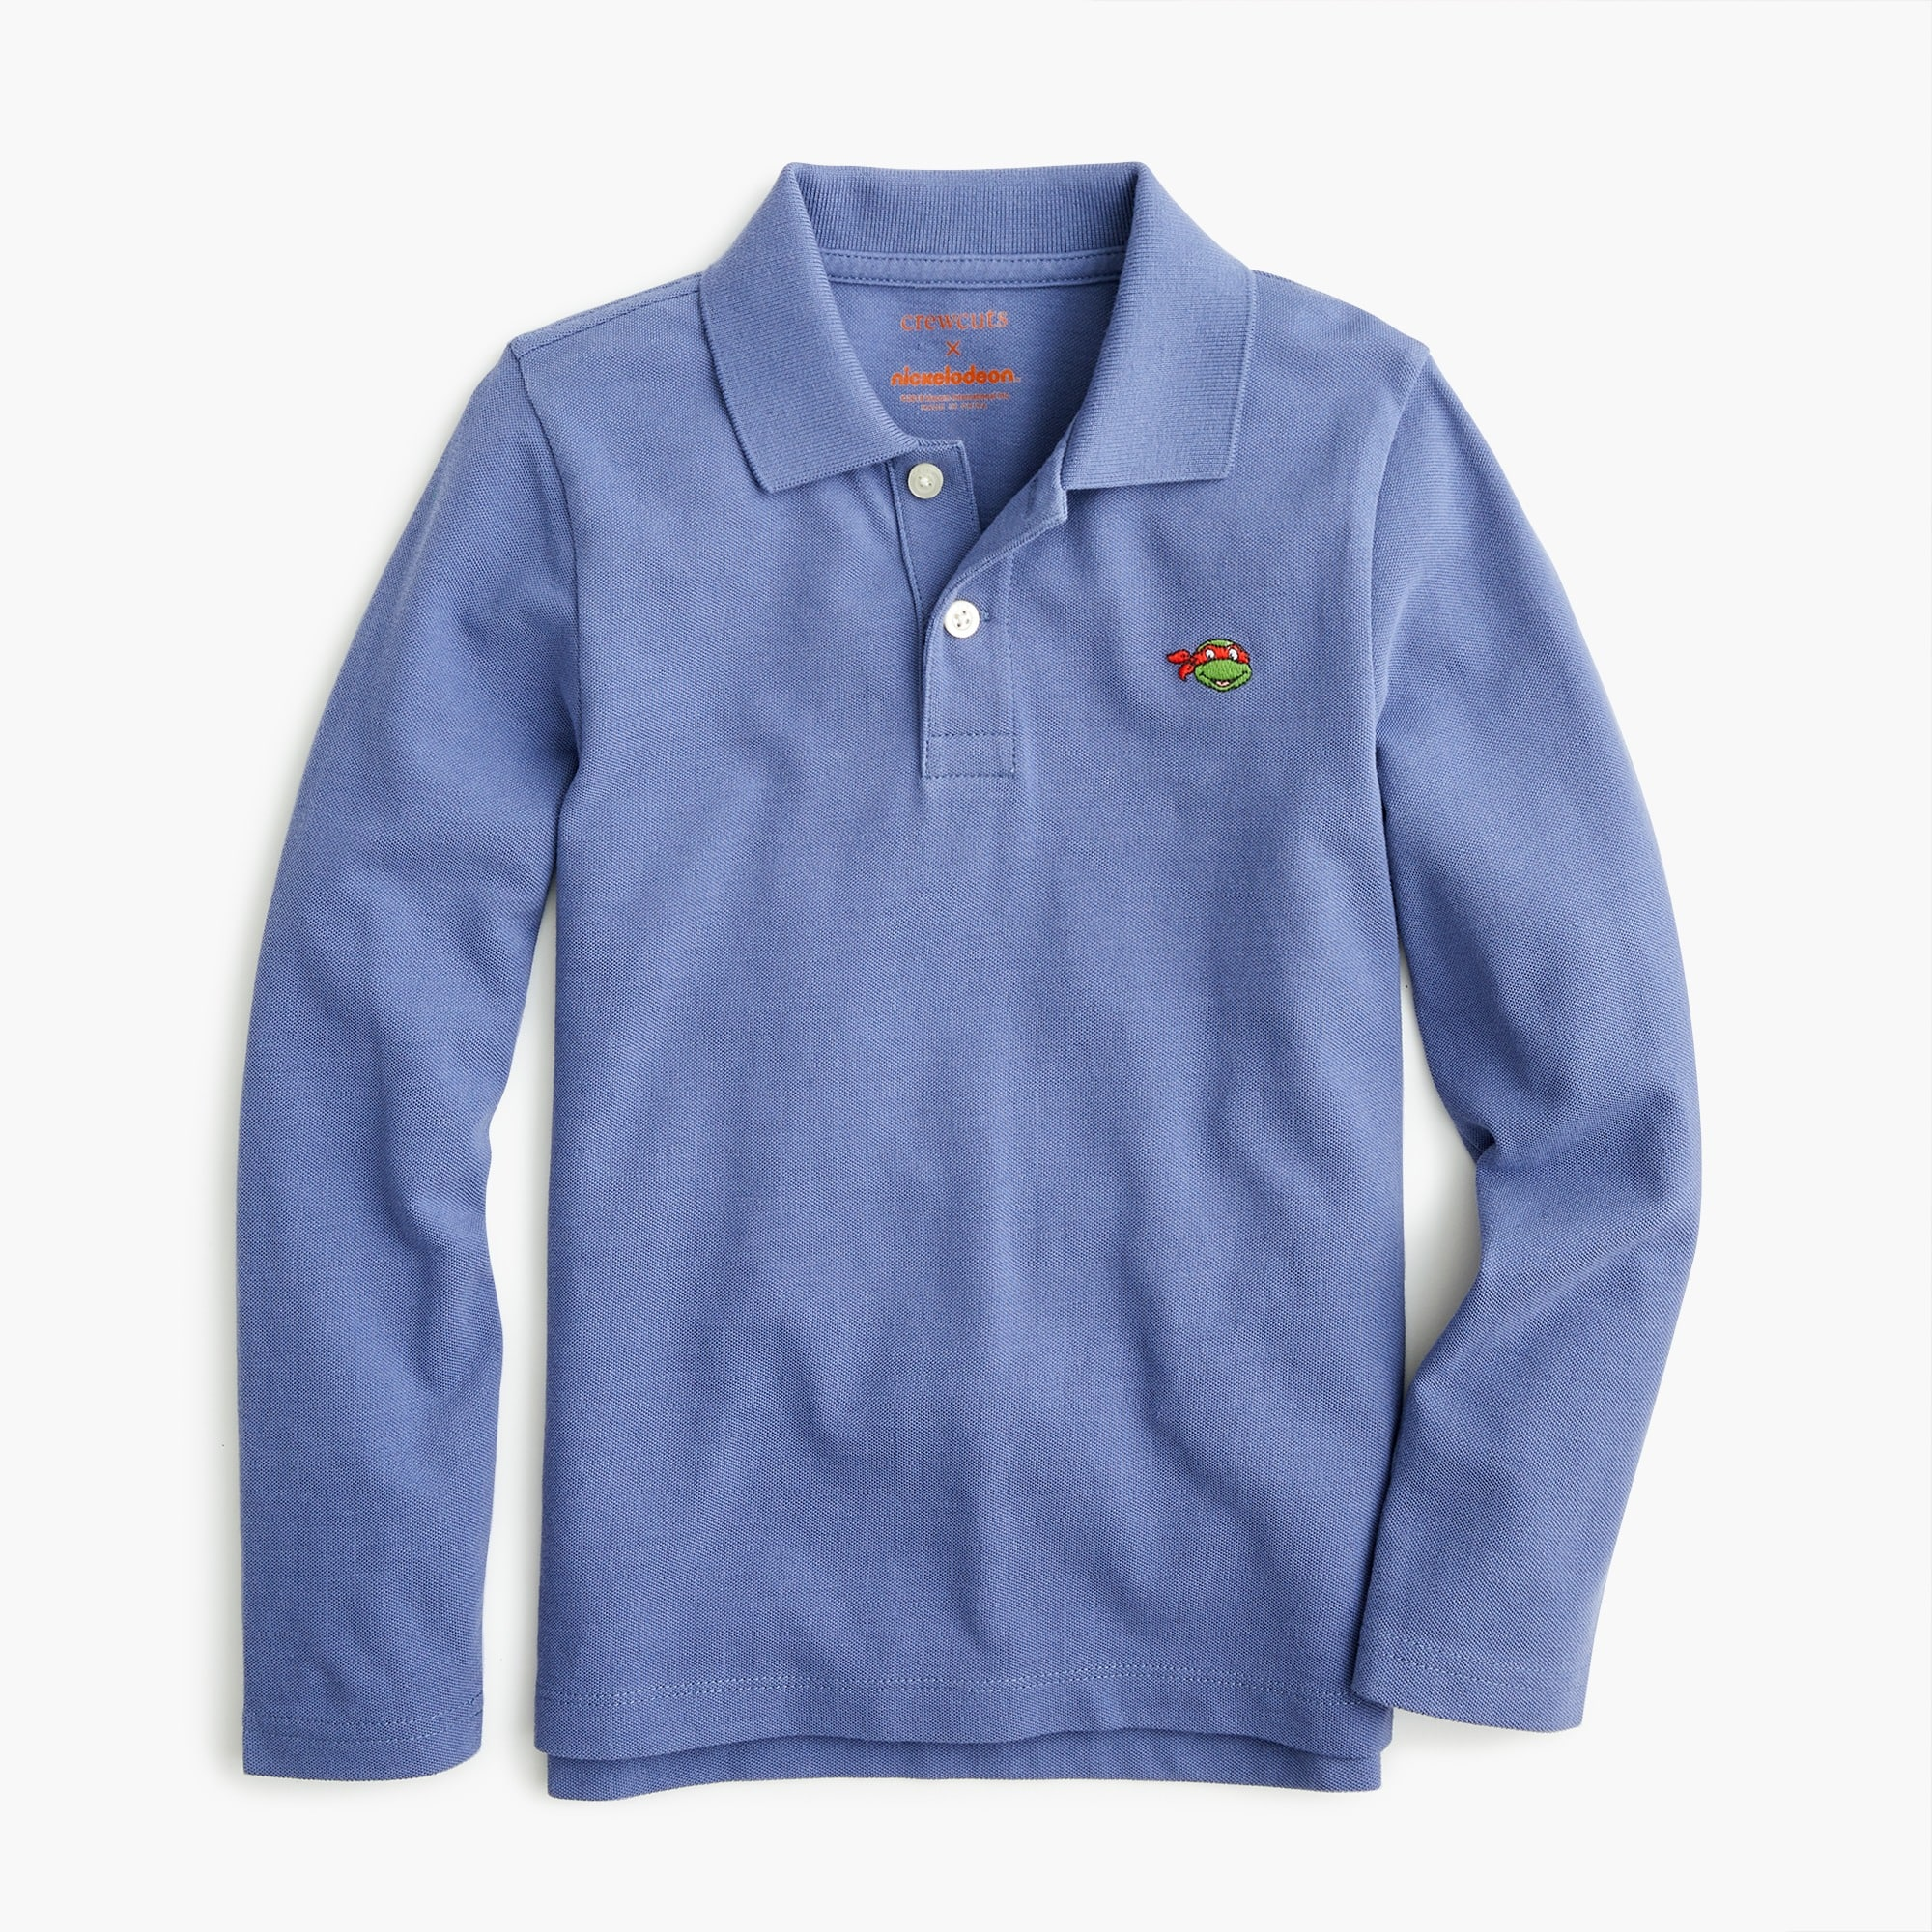 boys Kids' crewcuts X Nickelodeon™ long-sleeve critter polo shirt